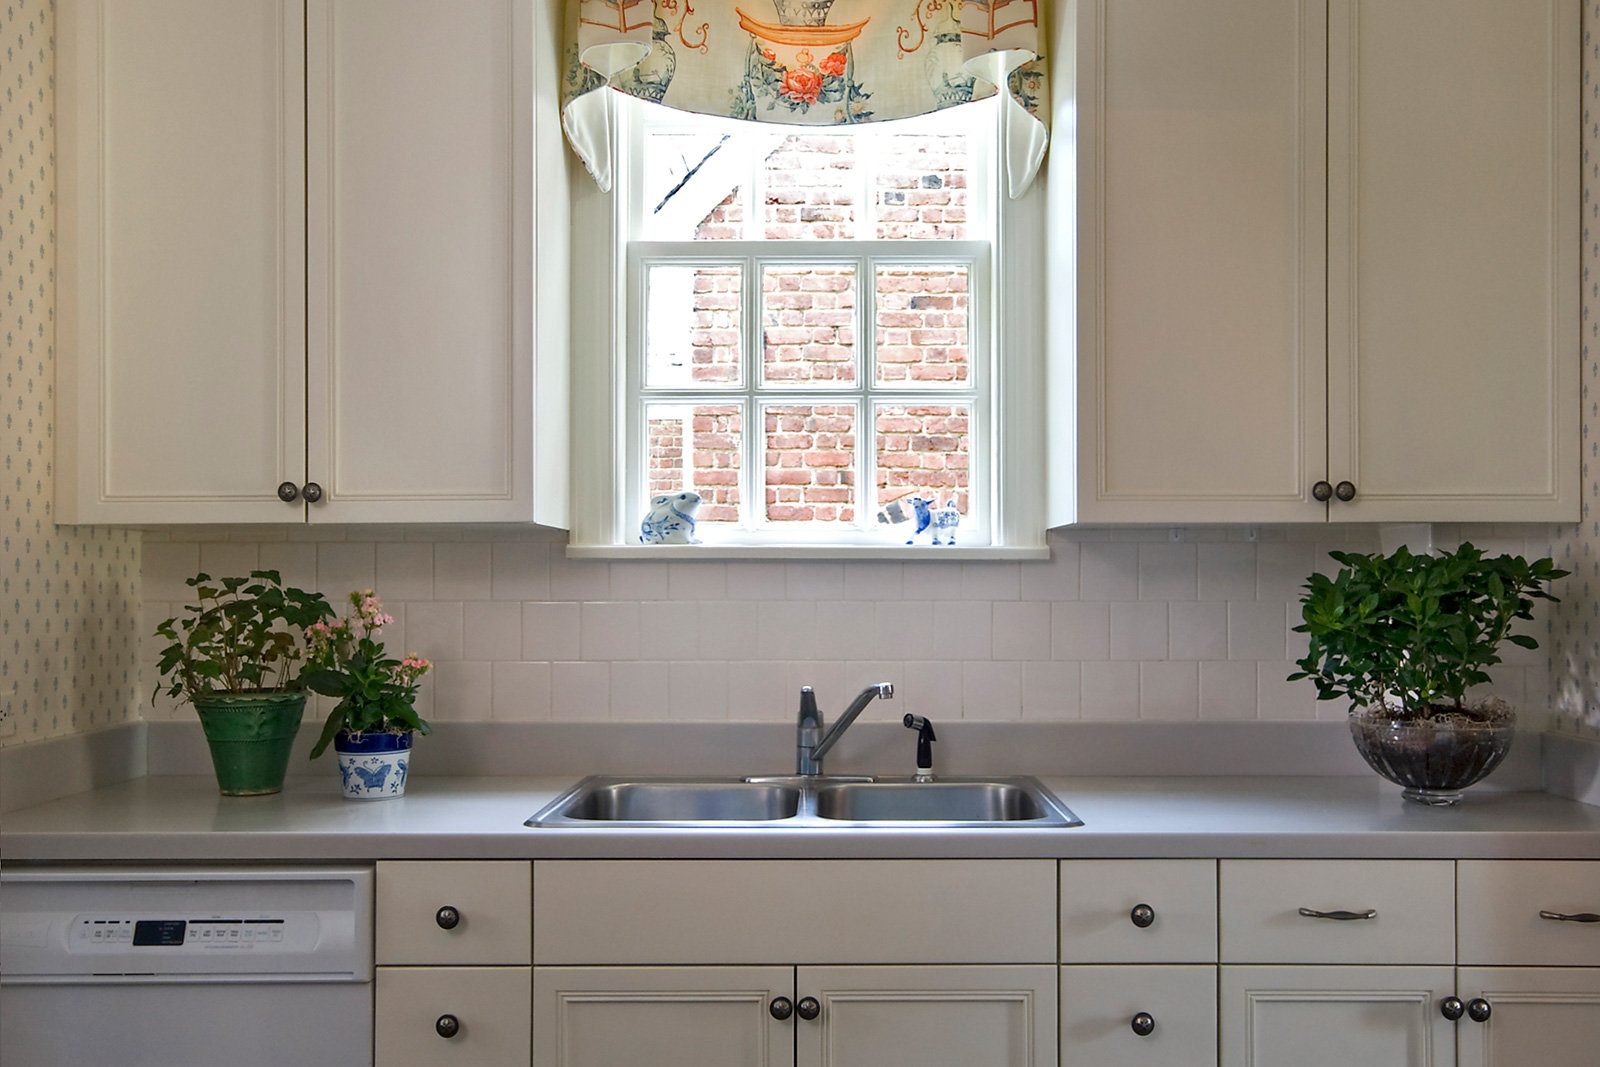 Awesome resurfacing kitchen cabinets refacing kitchen cabinets | kitchen refacing | houselogic qykyntr